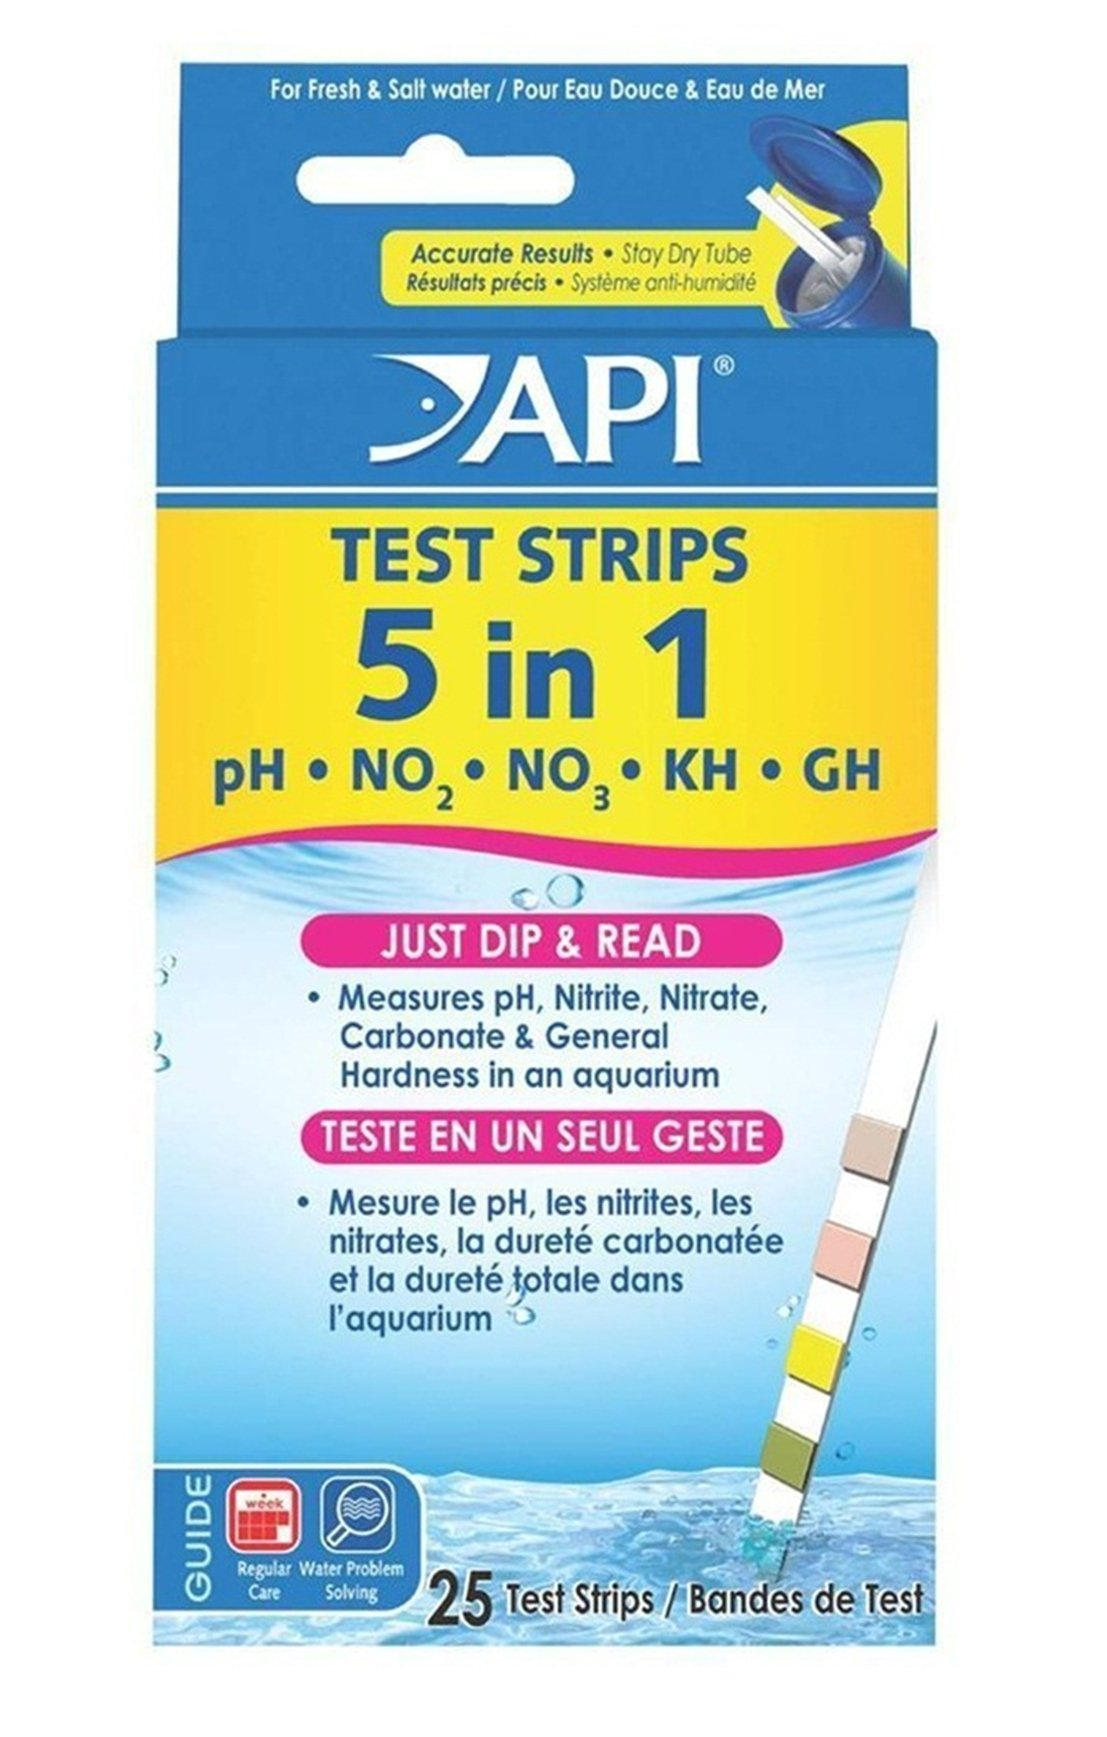 25 Ct. 5 in 1 Aquarium Tester Strips Easy to Read Accurate Results Saltwater Check Foremost Popular Water Kits with Color Chart by GVGs Shop (Image #1)